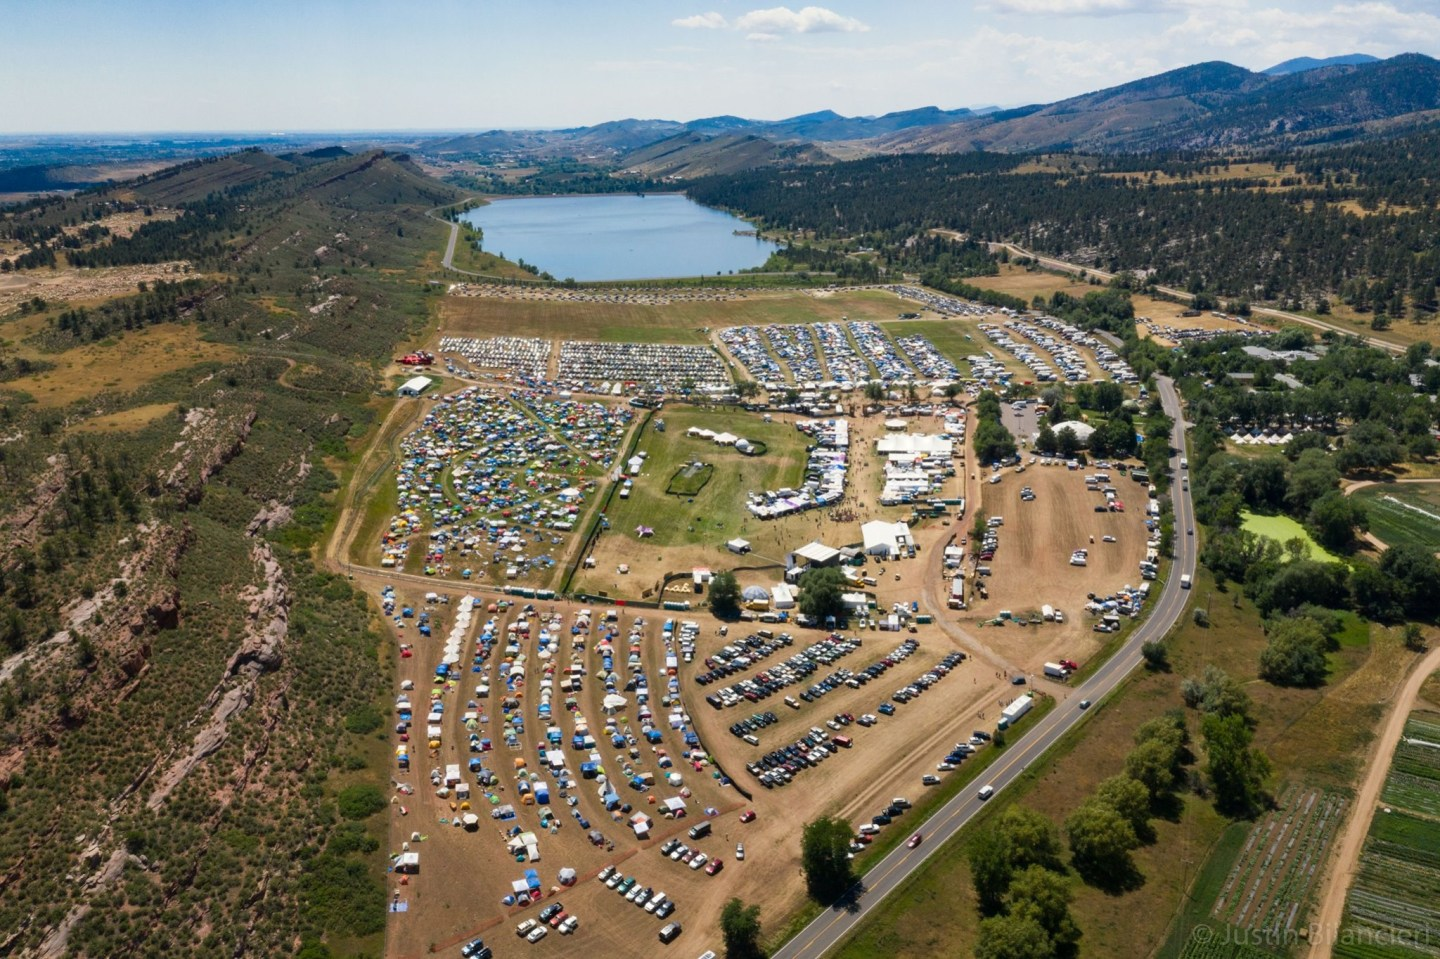 Aerial view of Arise Music Festival - Larimer County, Colorado